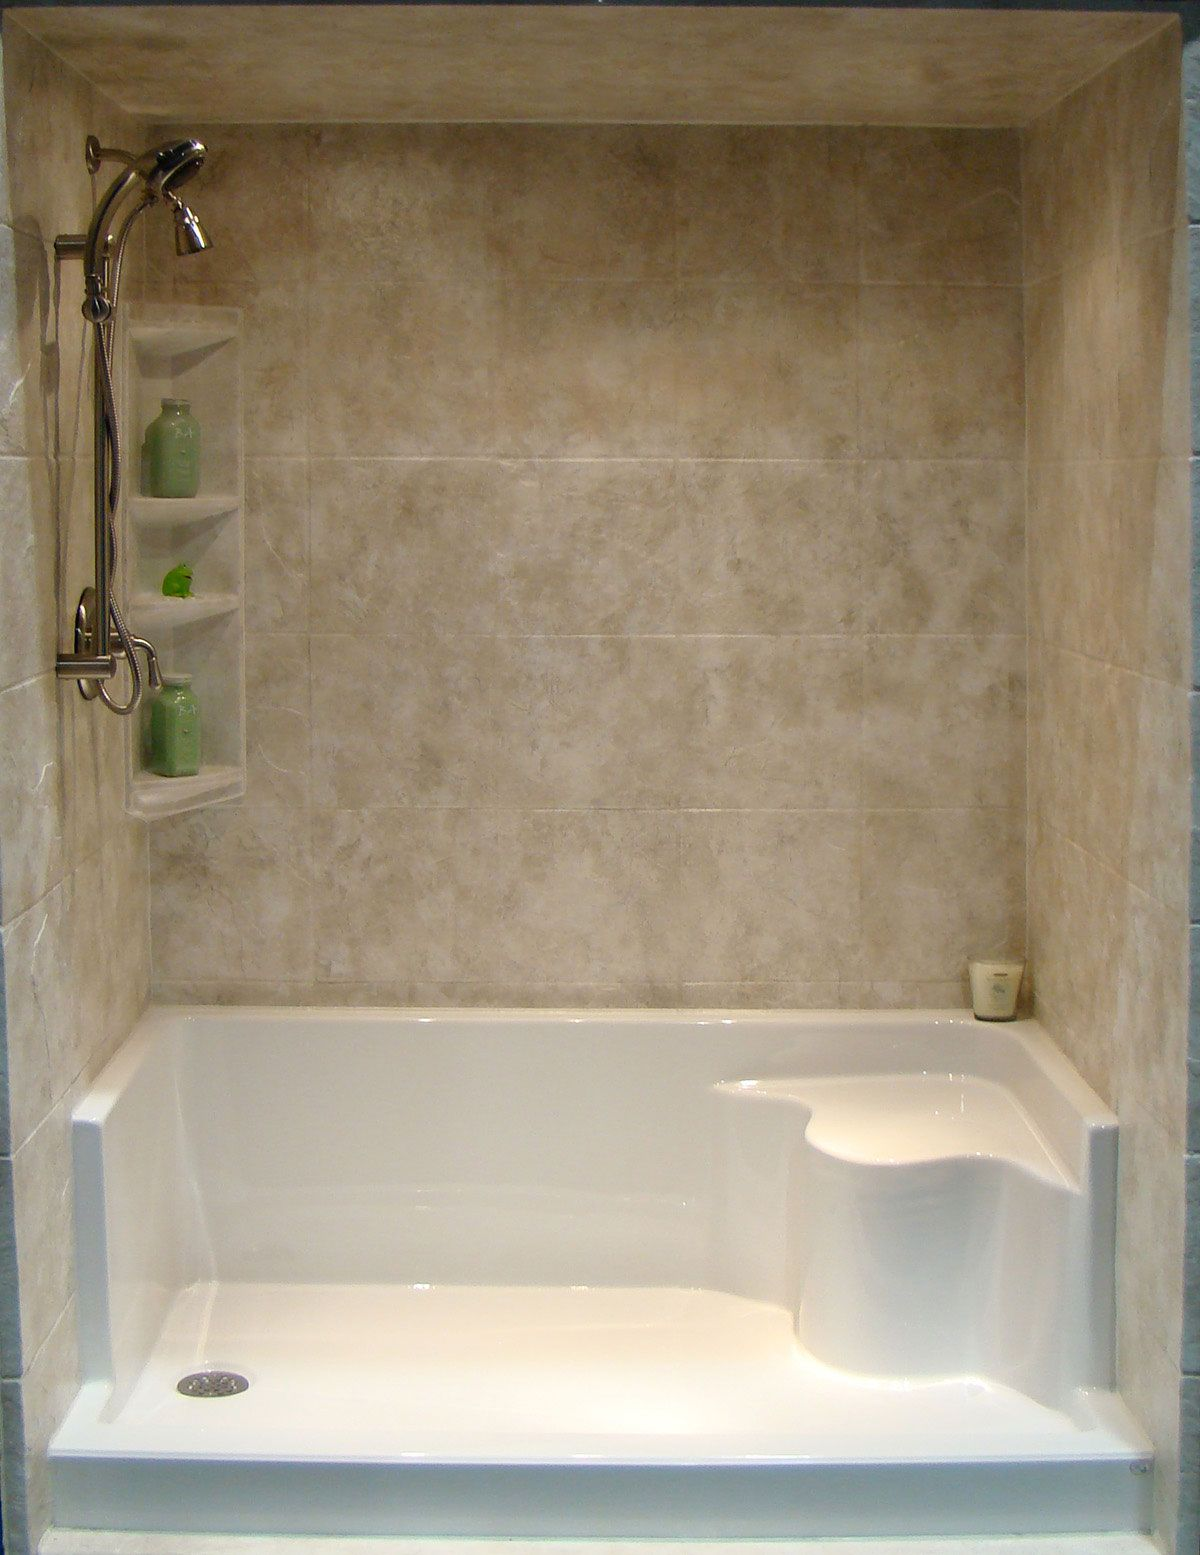 Tub An Shower Conversion Ideas Bathtub Refinishing Tub To Shower Conversions Rebath